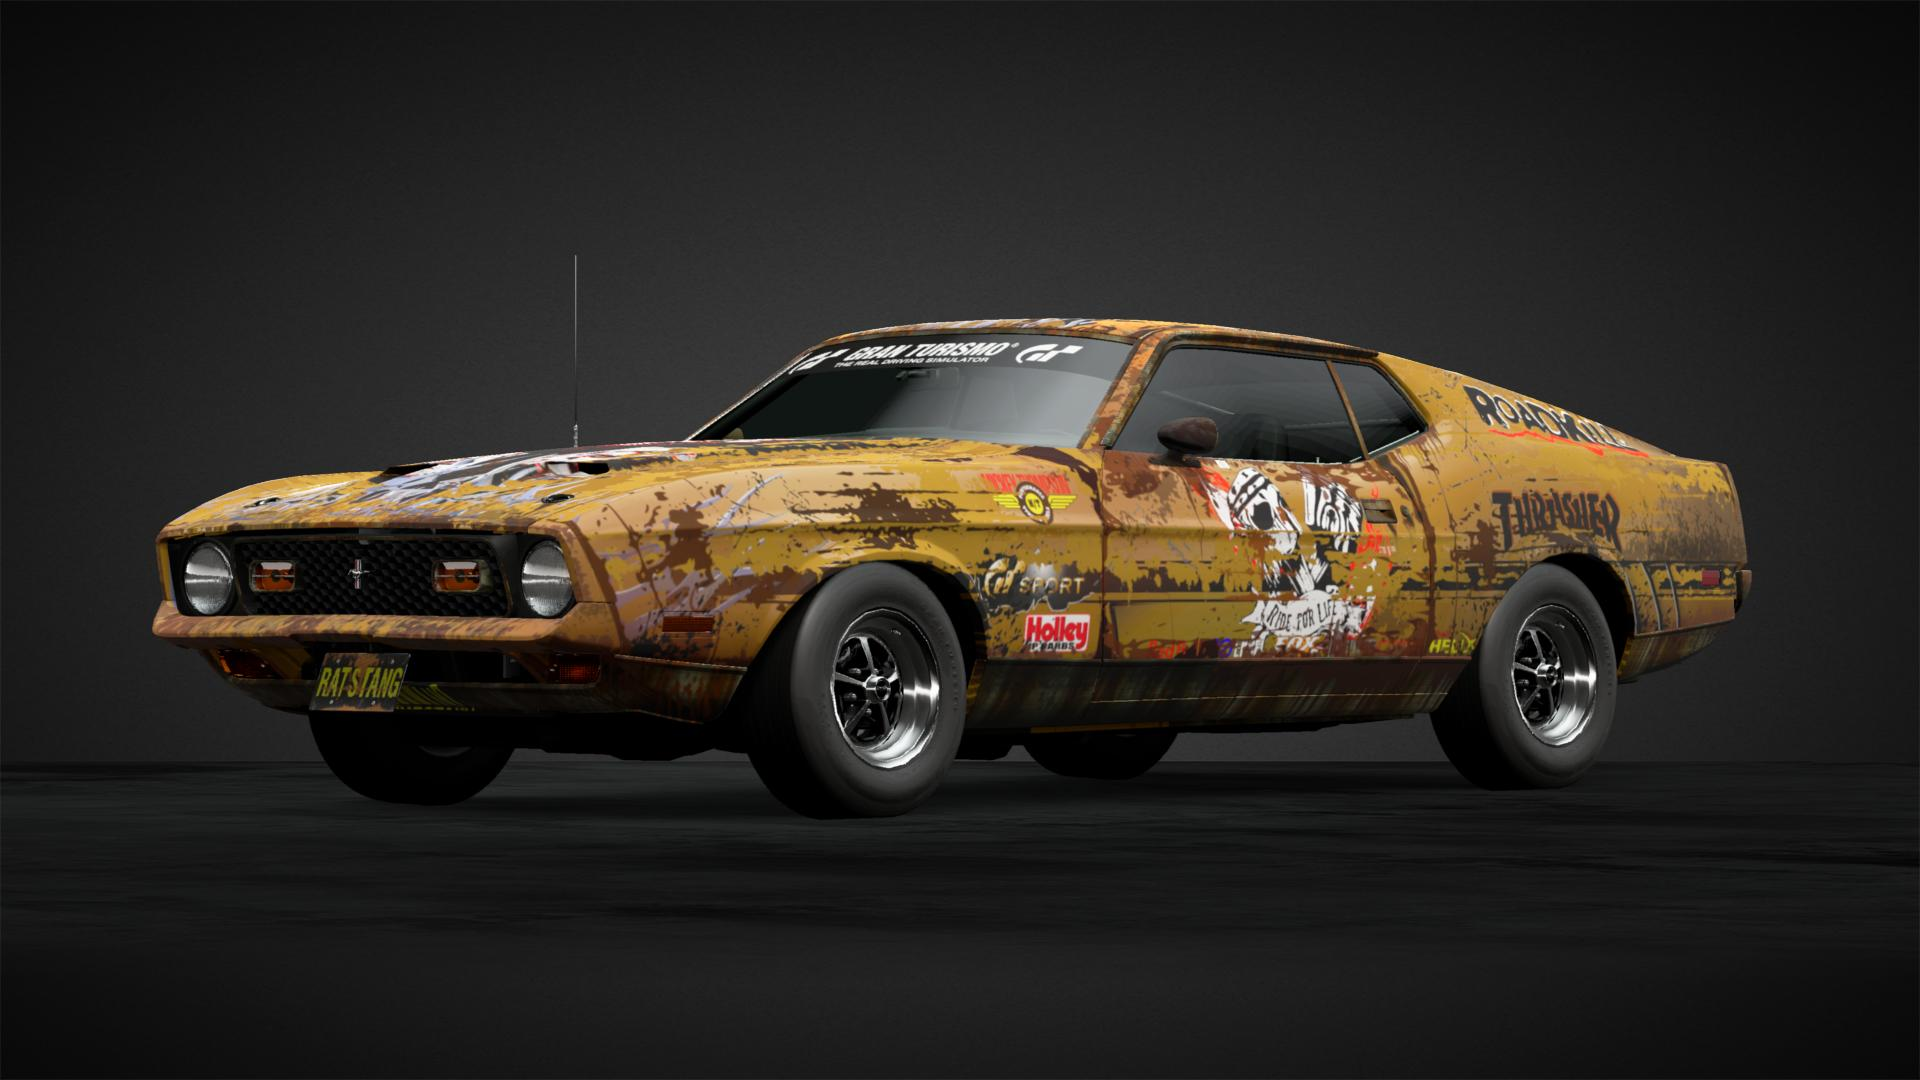 Rat stang Car Livery by EclecticRenegade munity